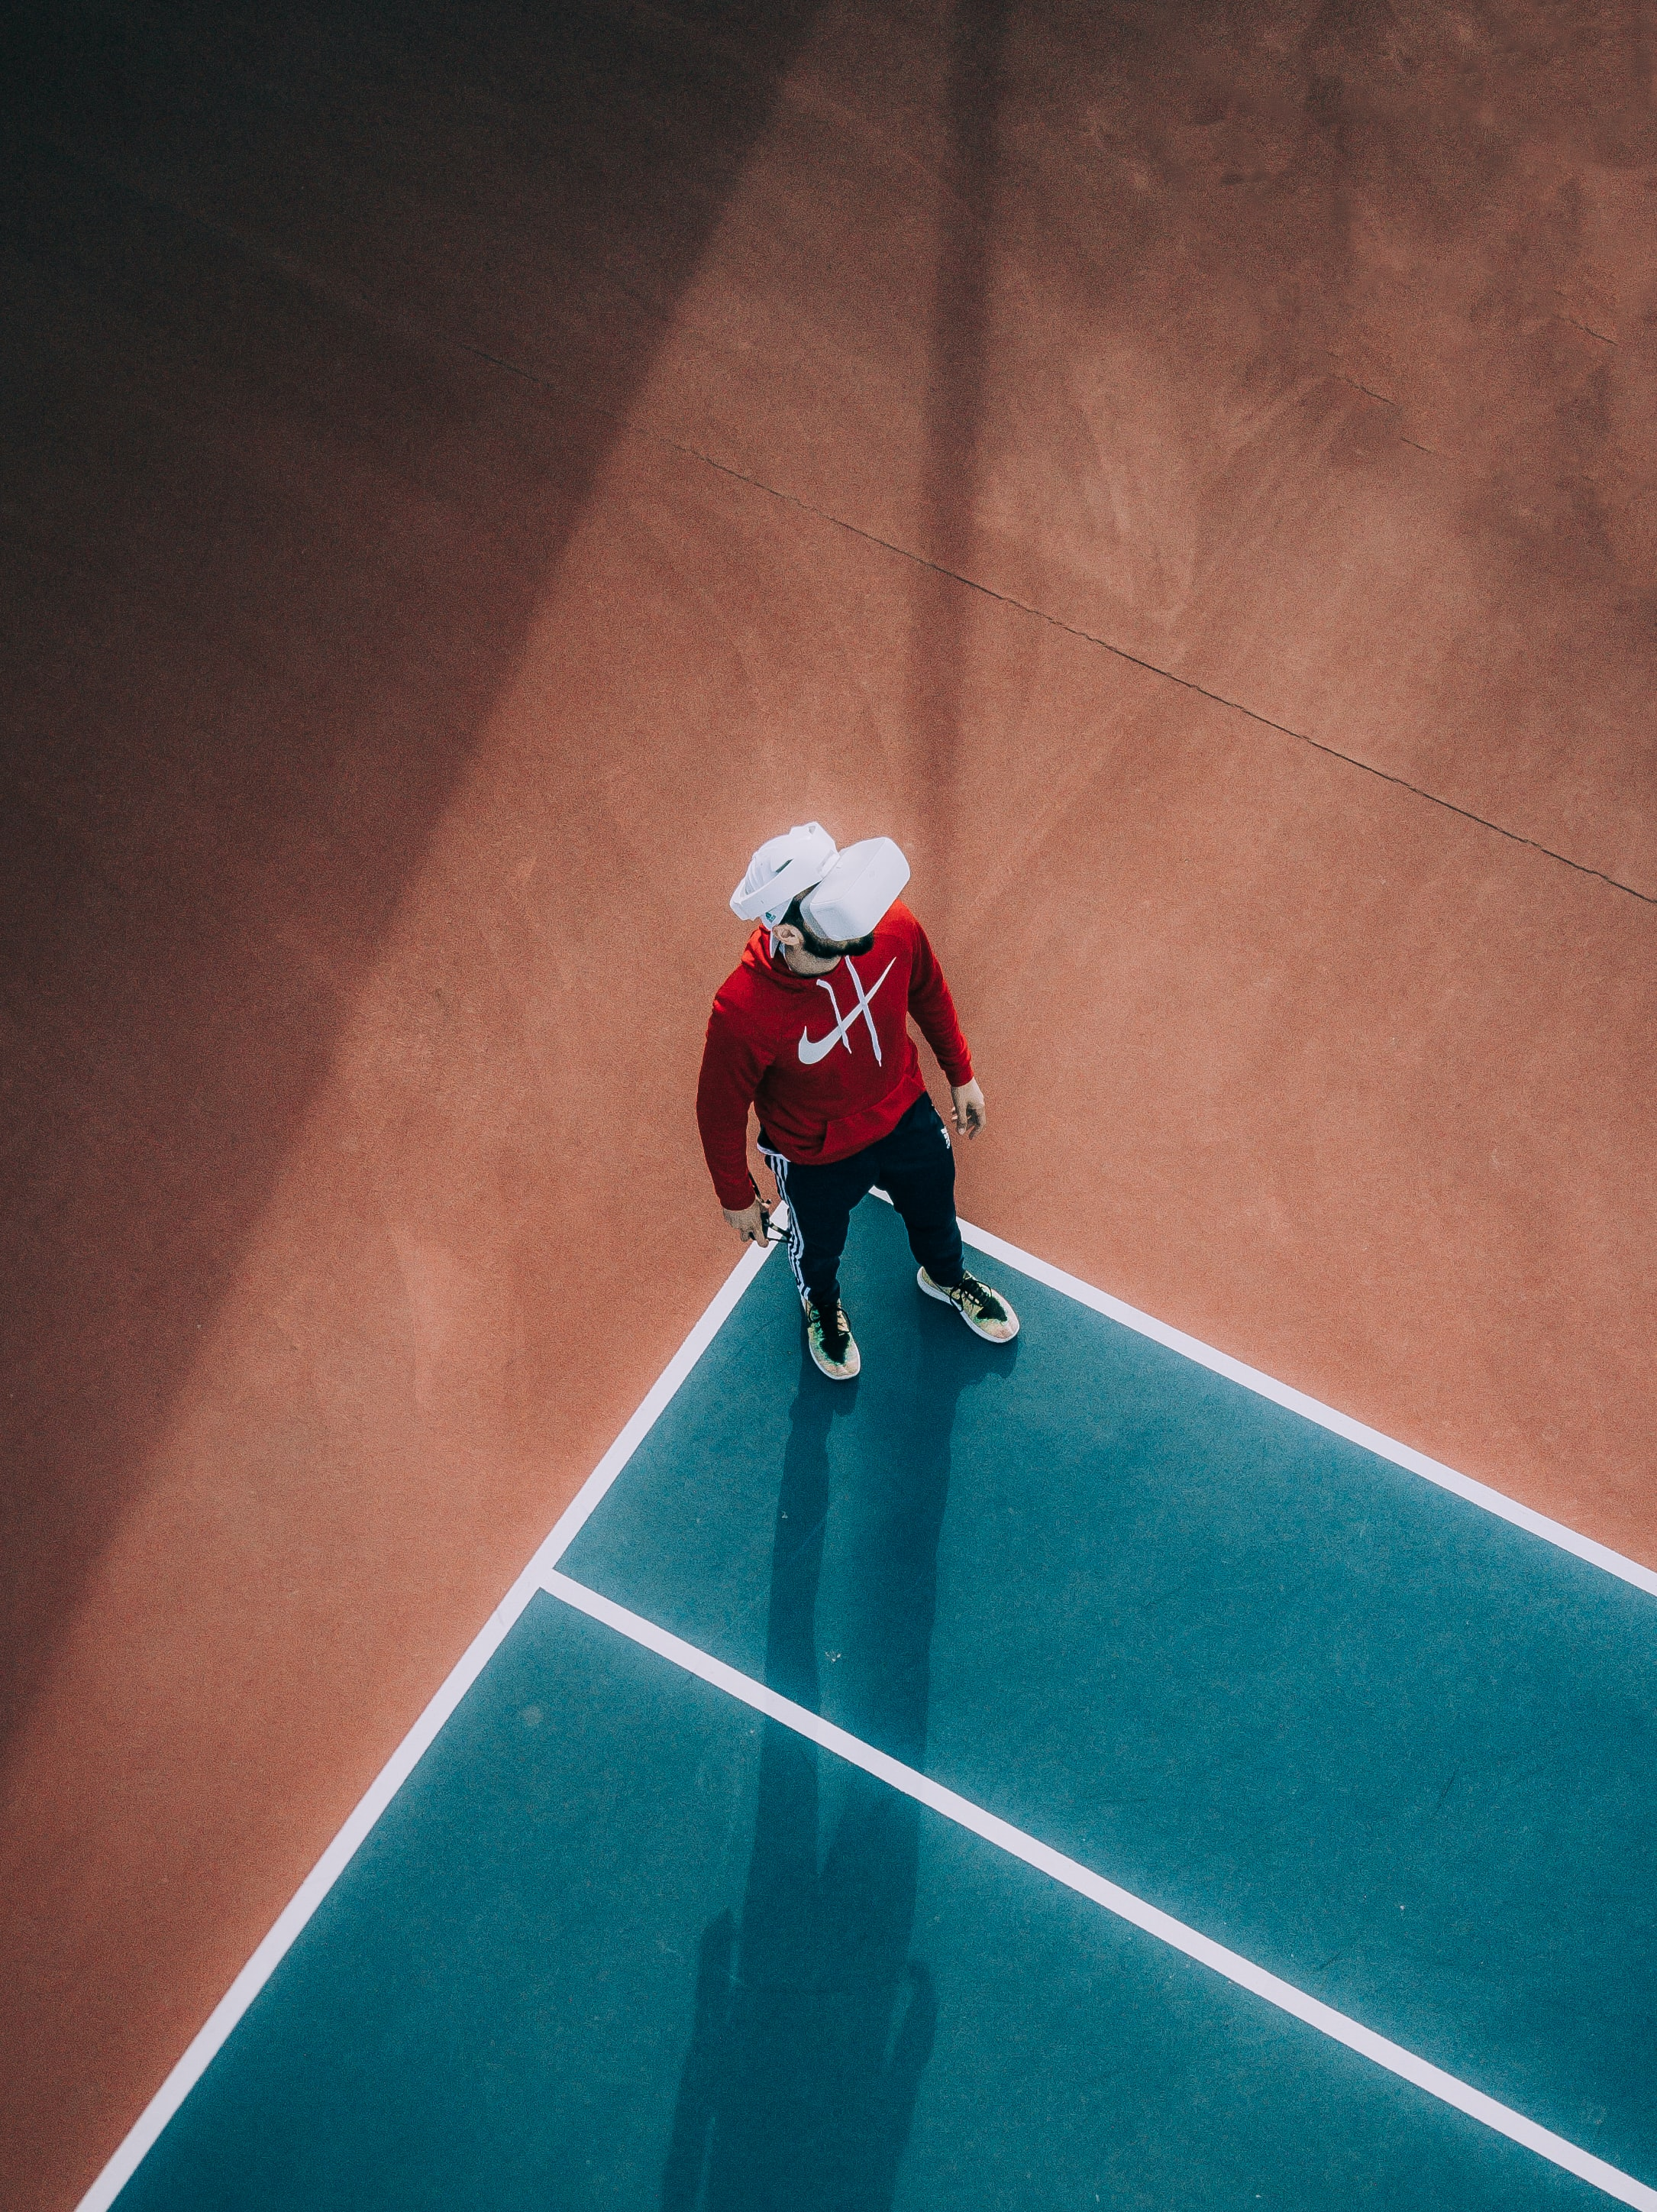 man standing on lawn tennis court